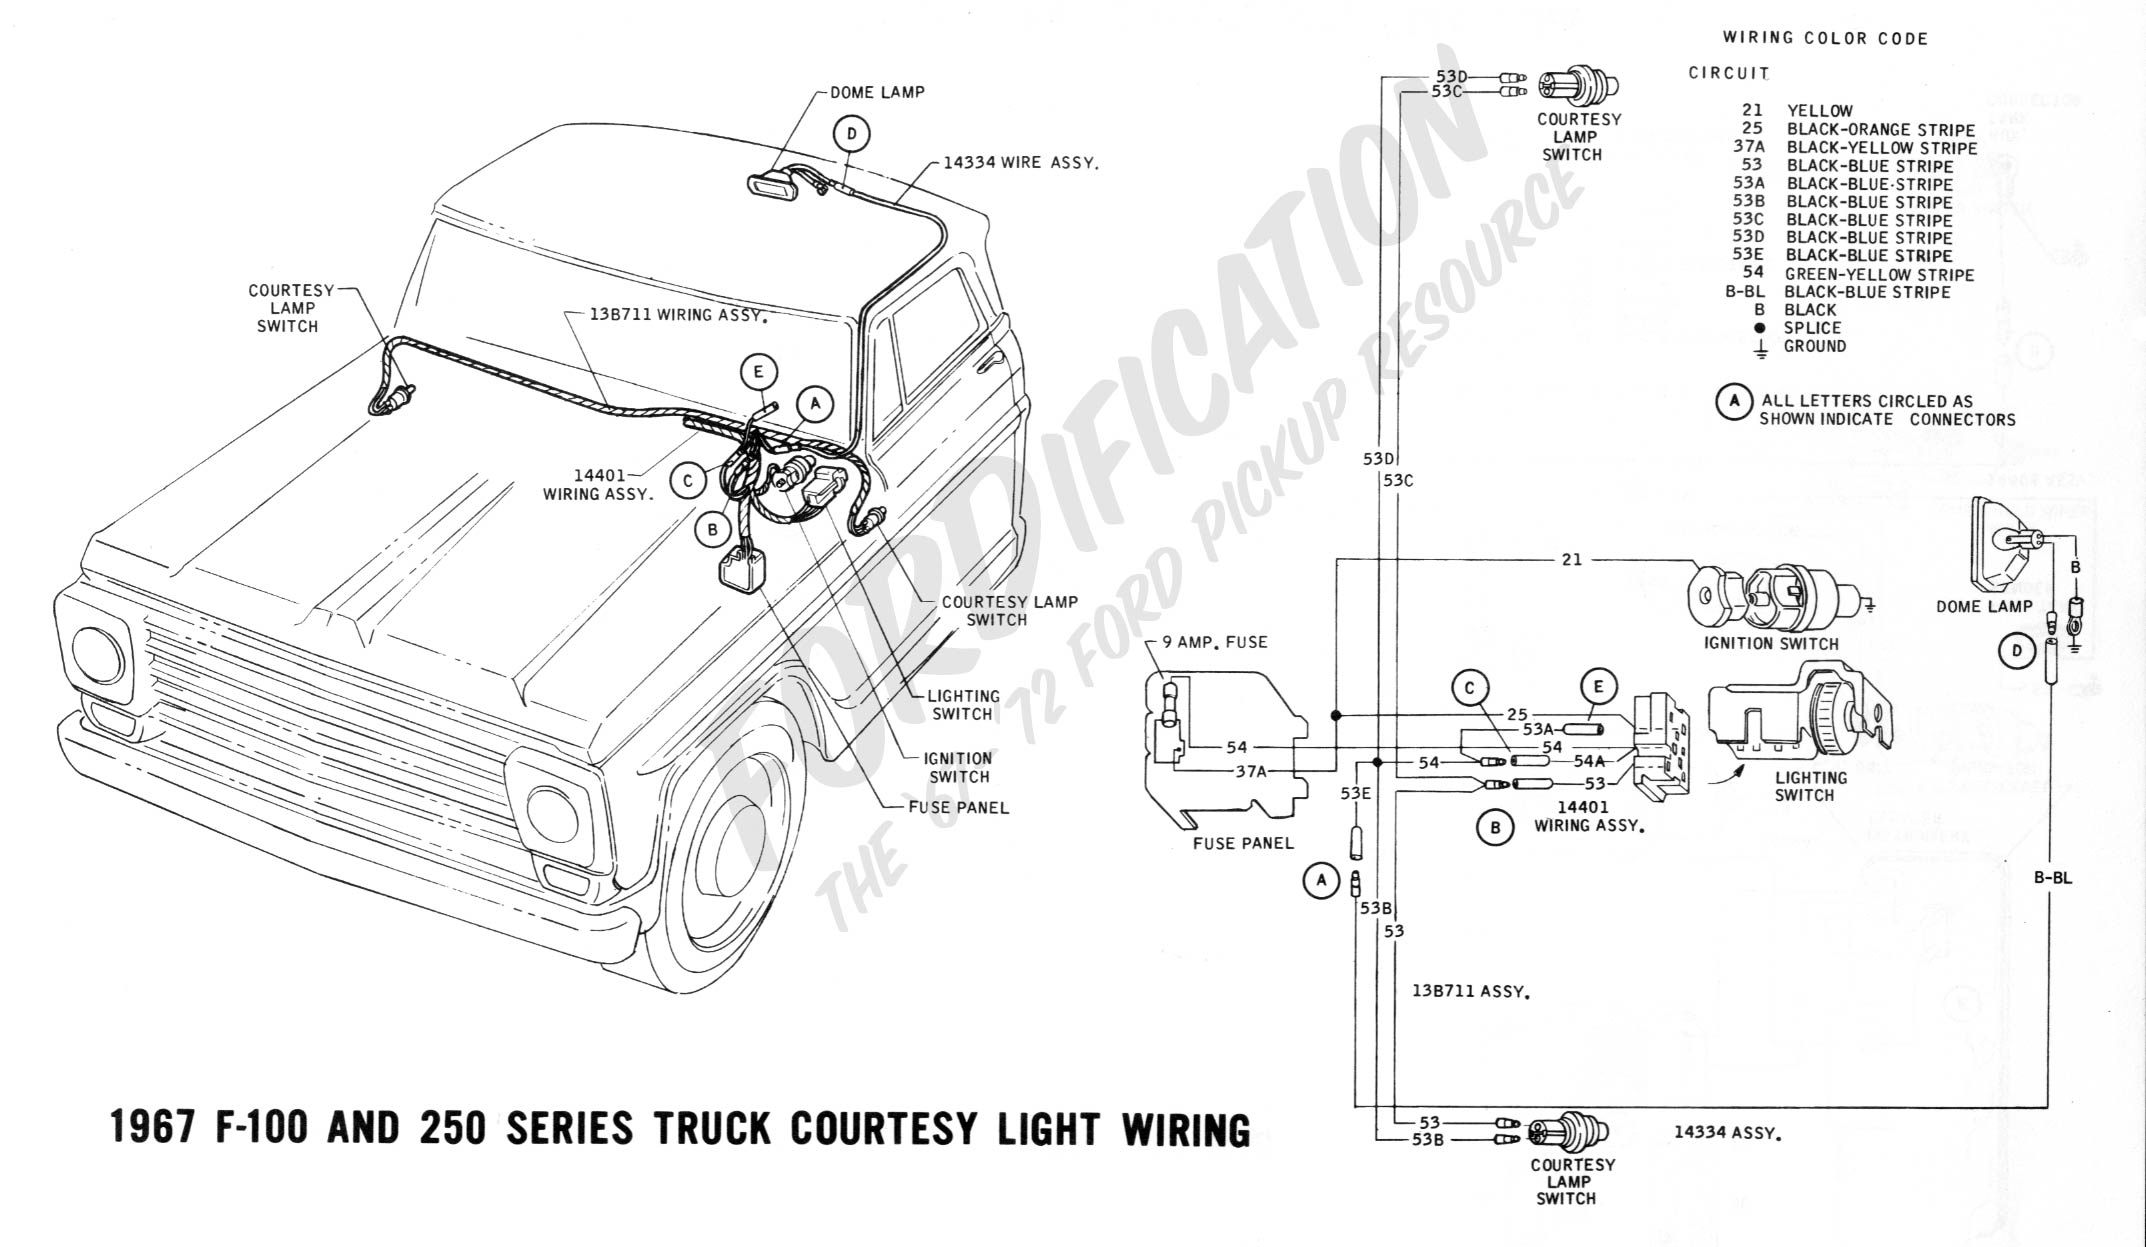 Ignition moreover Painless Wiring Diagram 55 Chevy furthermore 1993 F700 Wiring Diagrams also Page1 furthermore Guzzi Electrical Question. on 1993 ford mustang ignition wiring